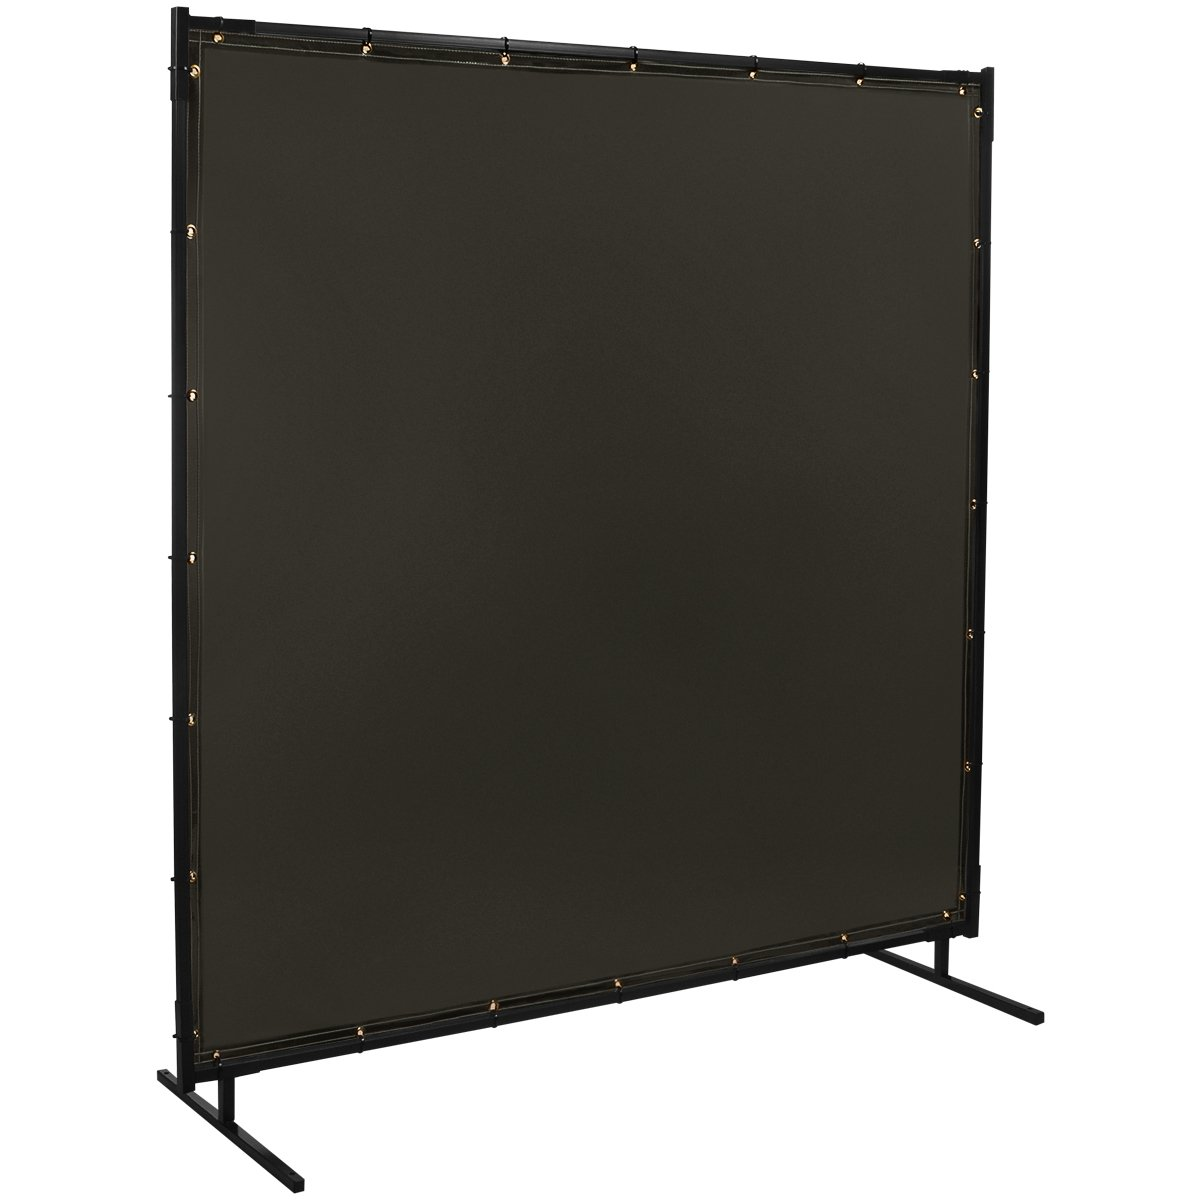 Steiner 532HD-6X8 Protect-O-Screen HD Welding Screen with Flame Retardant 14 Mil Tinted Transparent Vinyl Curtain, Gray, 6' x 8'